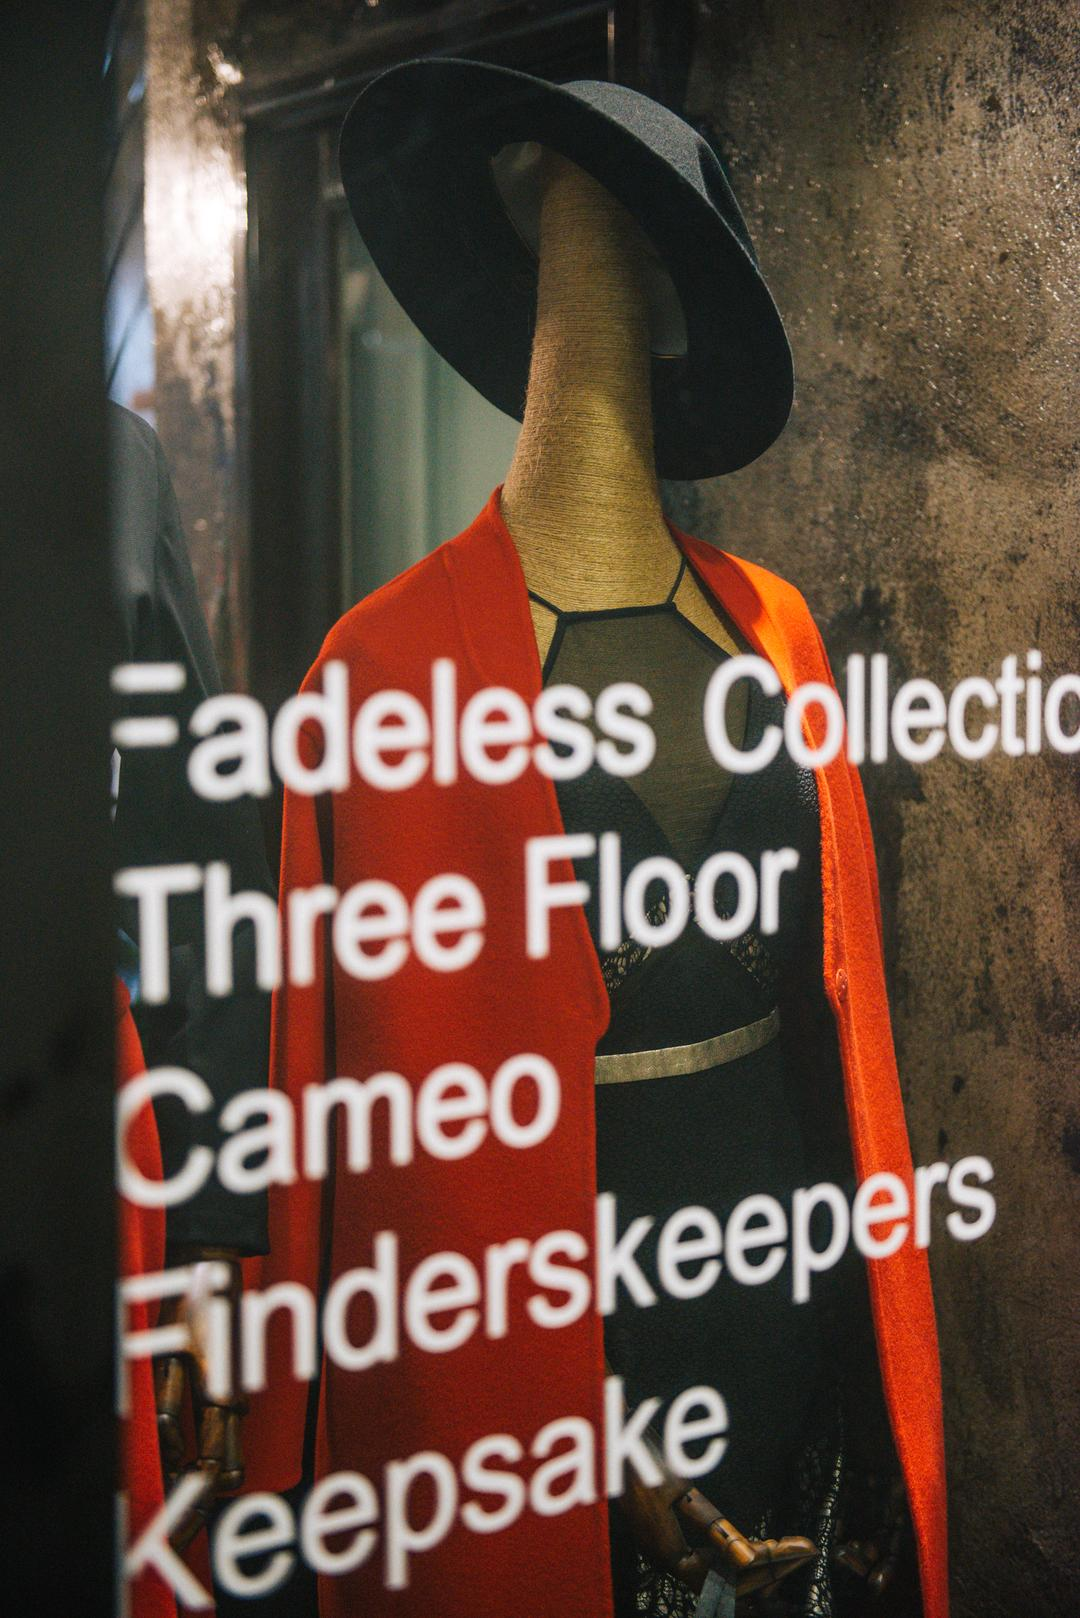 fadeless collection